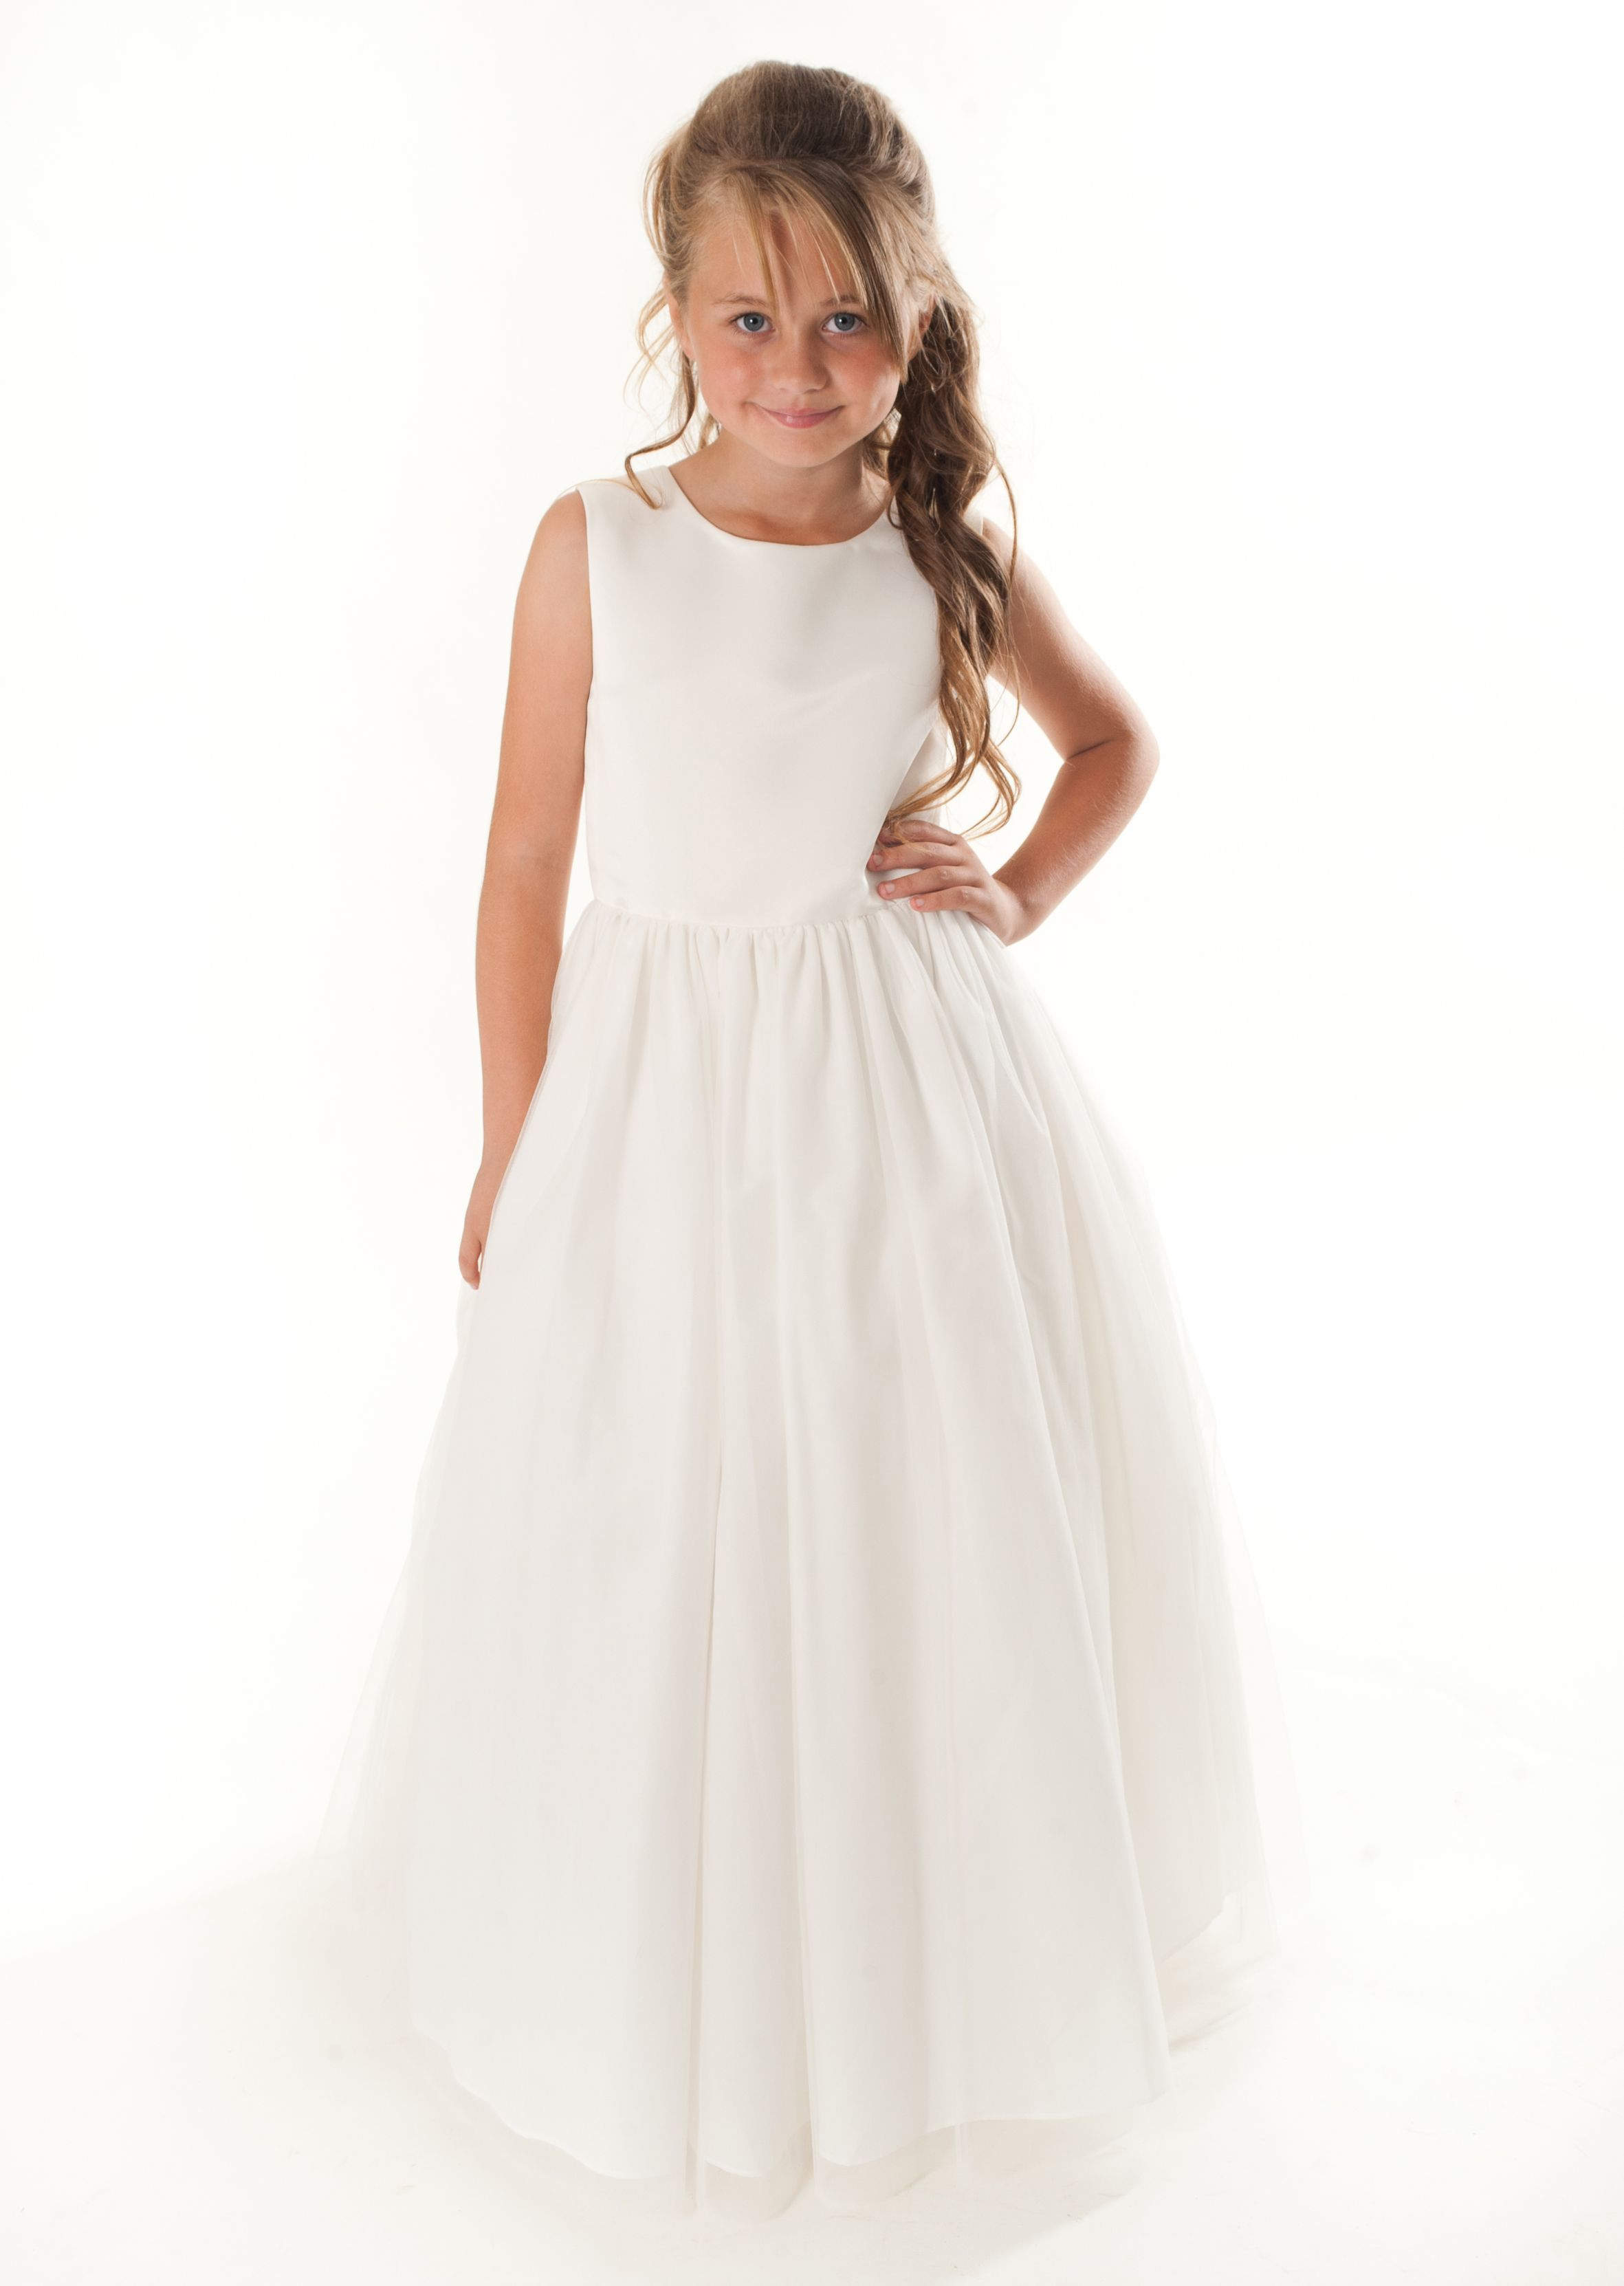 Plain White Flower Girl Dresses Image Collections Fresh Lotus Flowers